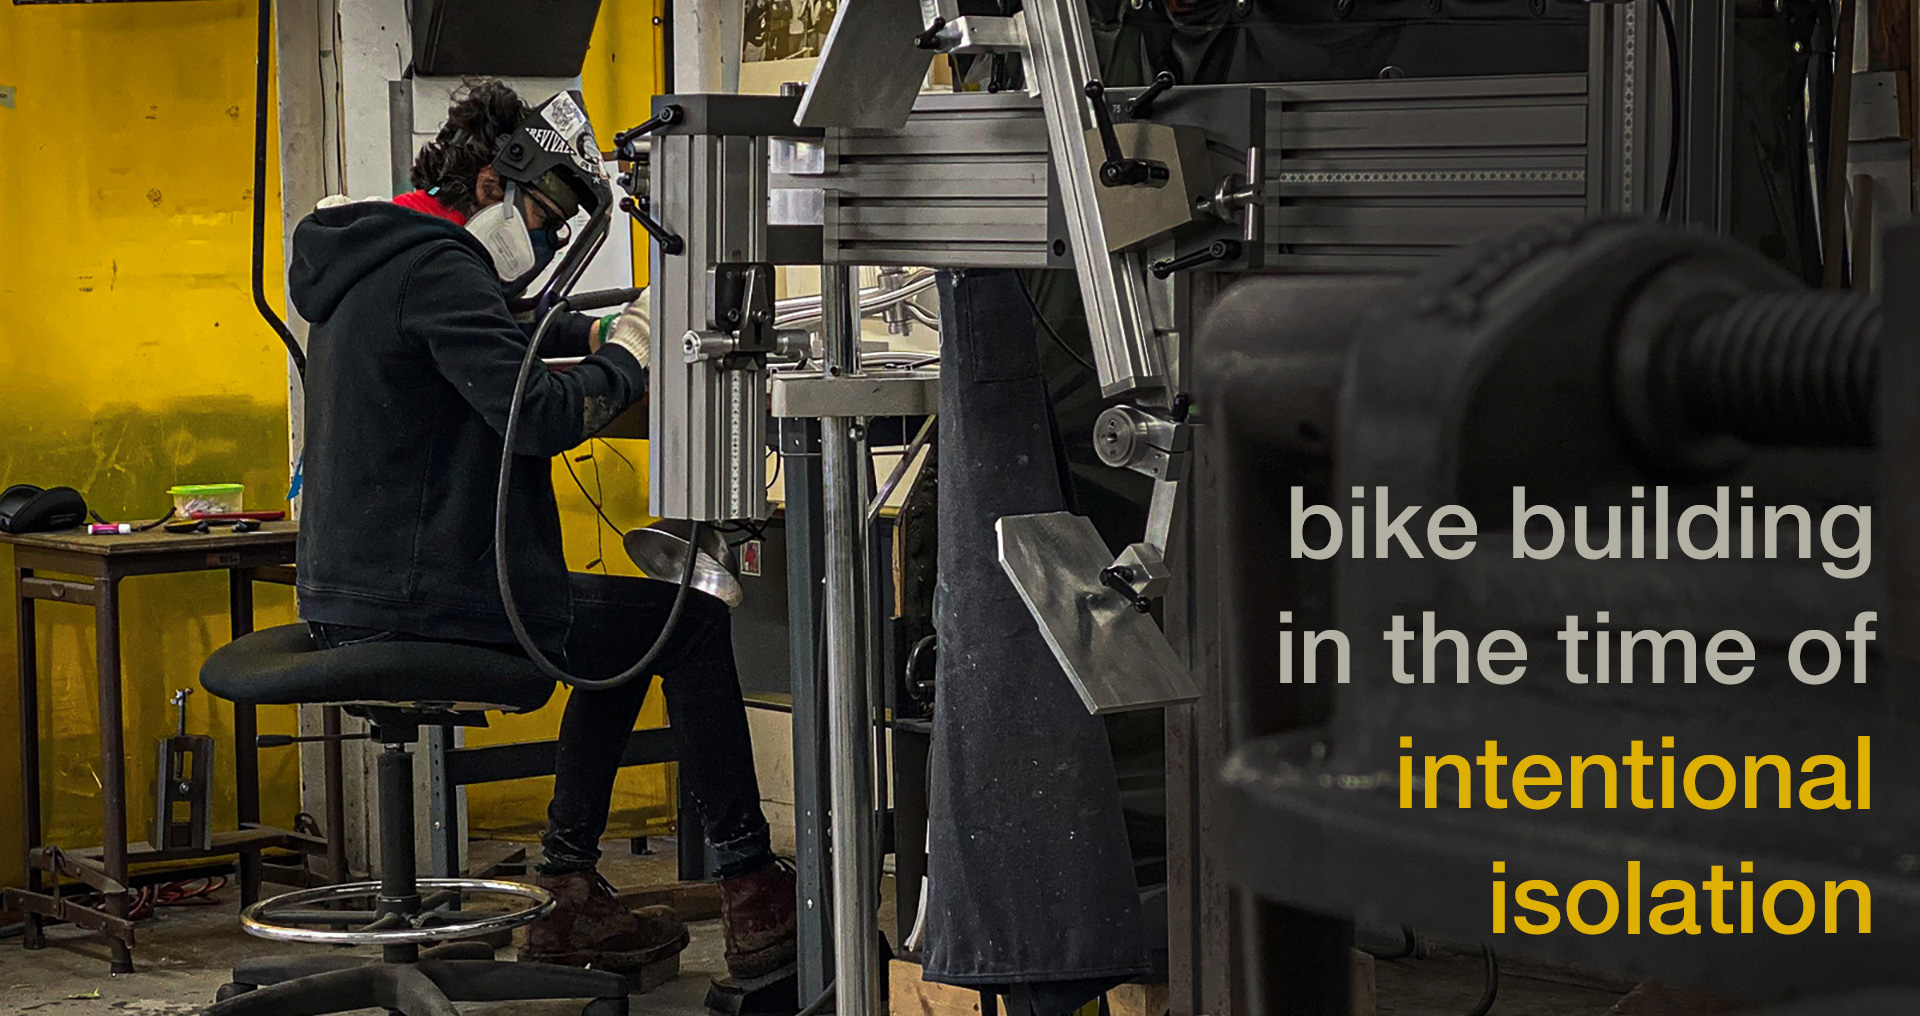 bike building in a time of intentional isolation